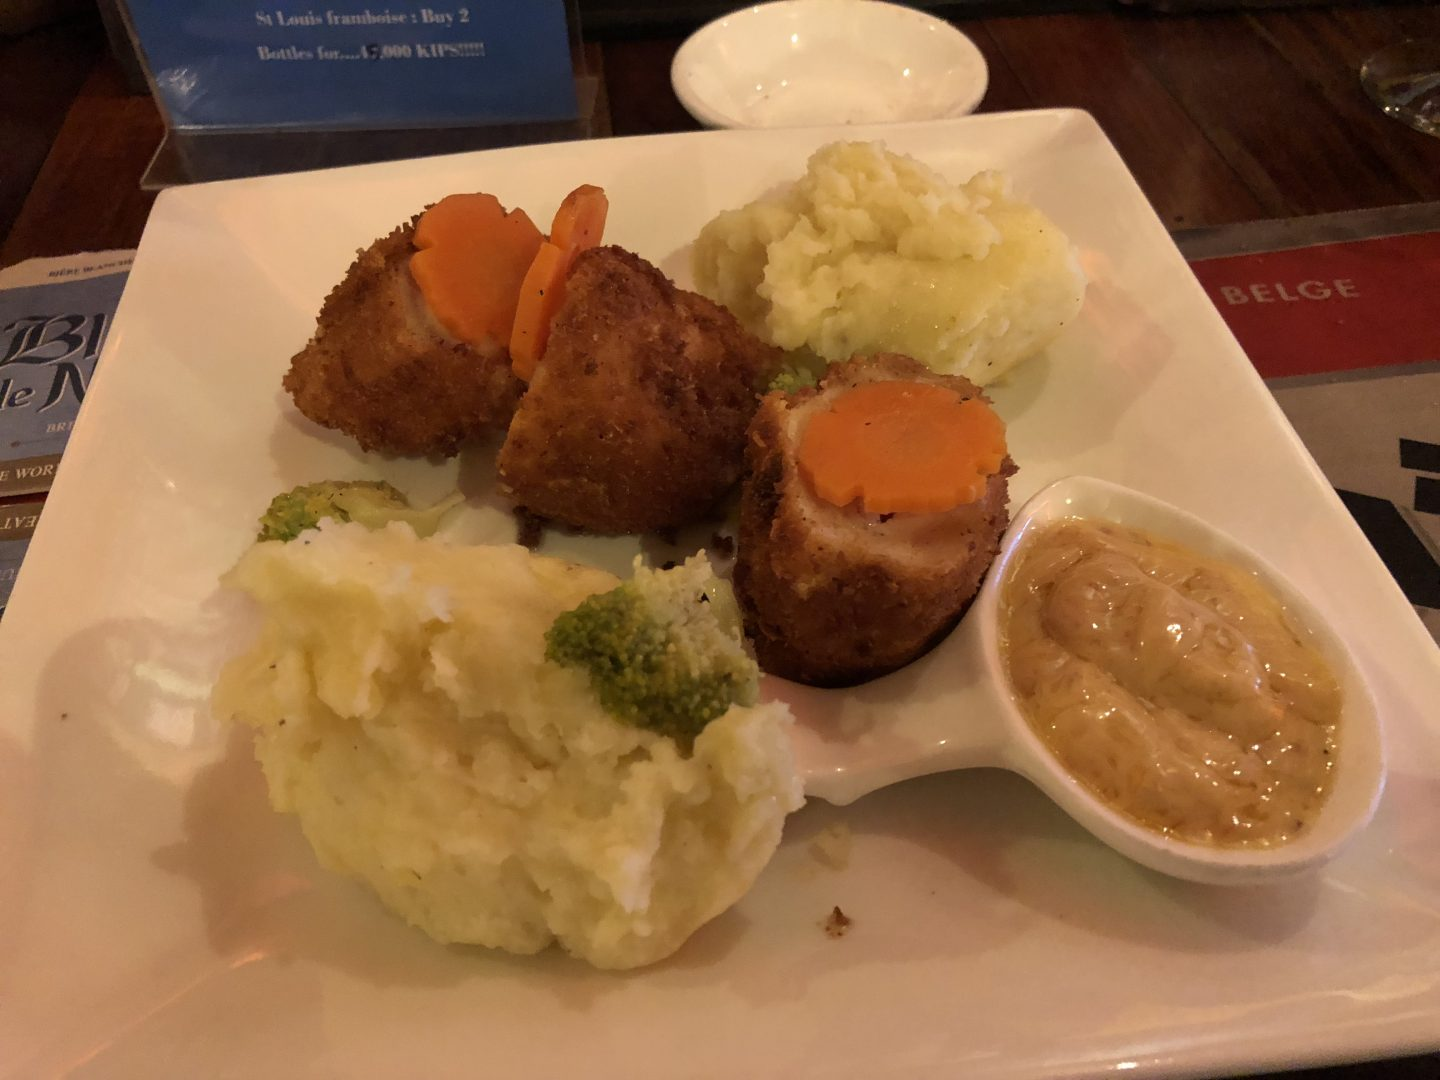 Chokdee Cafe - Belgian Beer Bar - Chicken Cordon Bleu